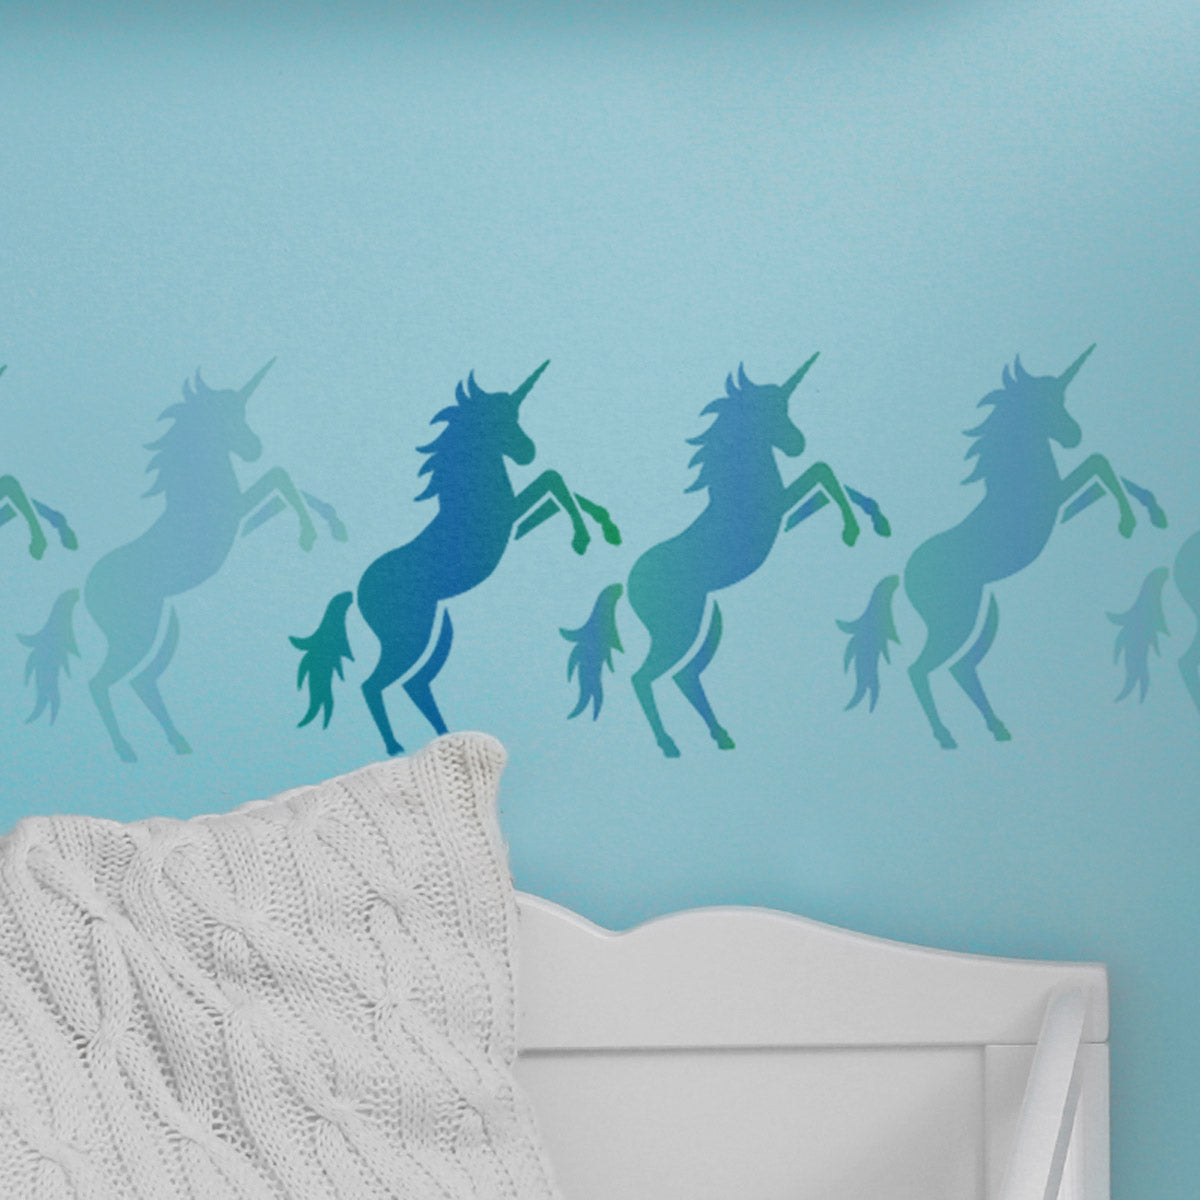 CraftStar Prancing Unicorn Stencil on Wall